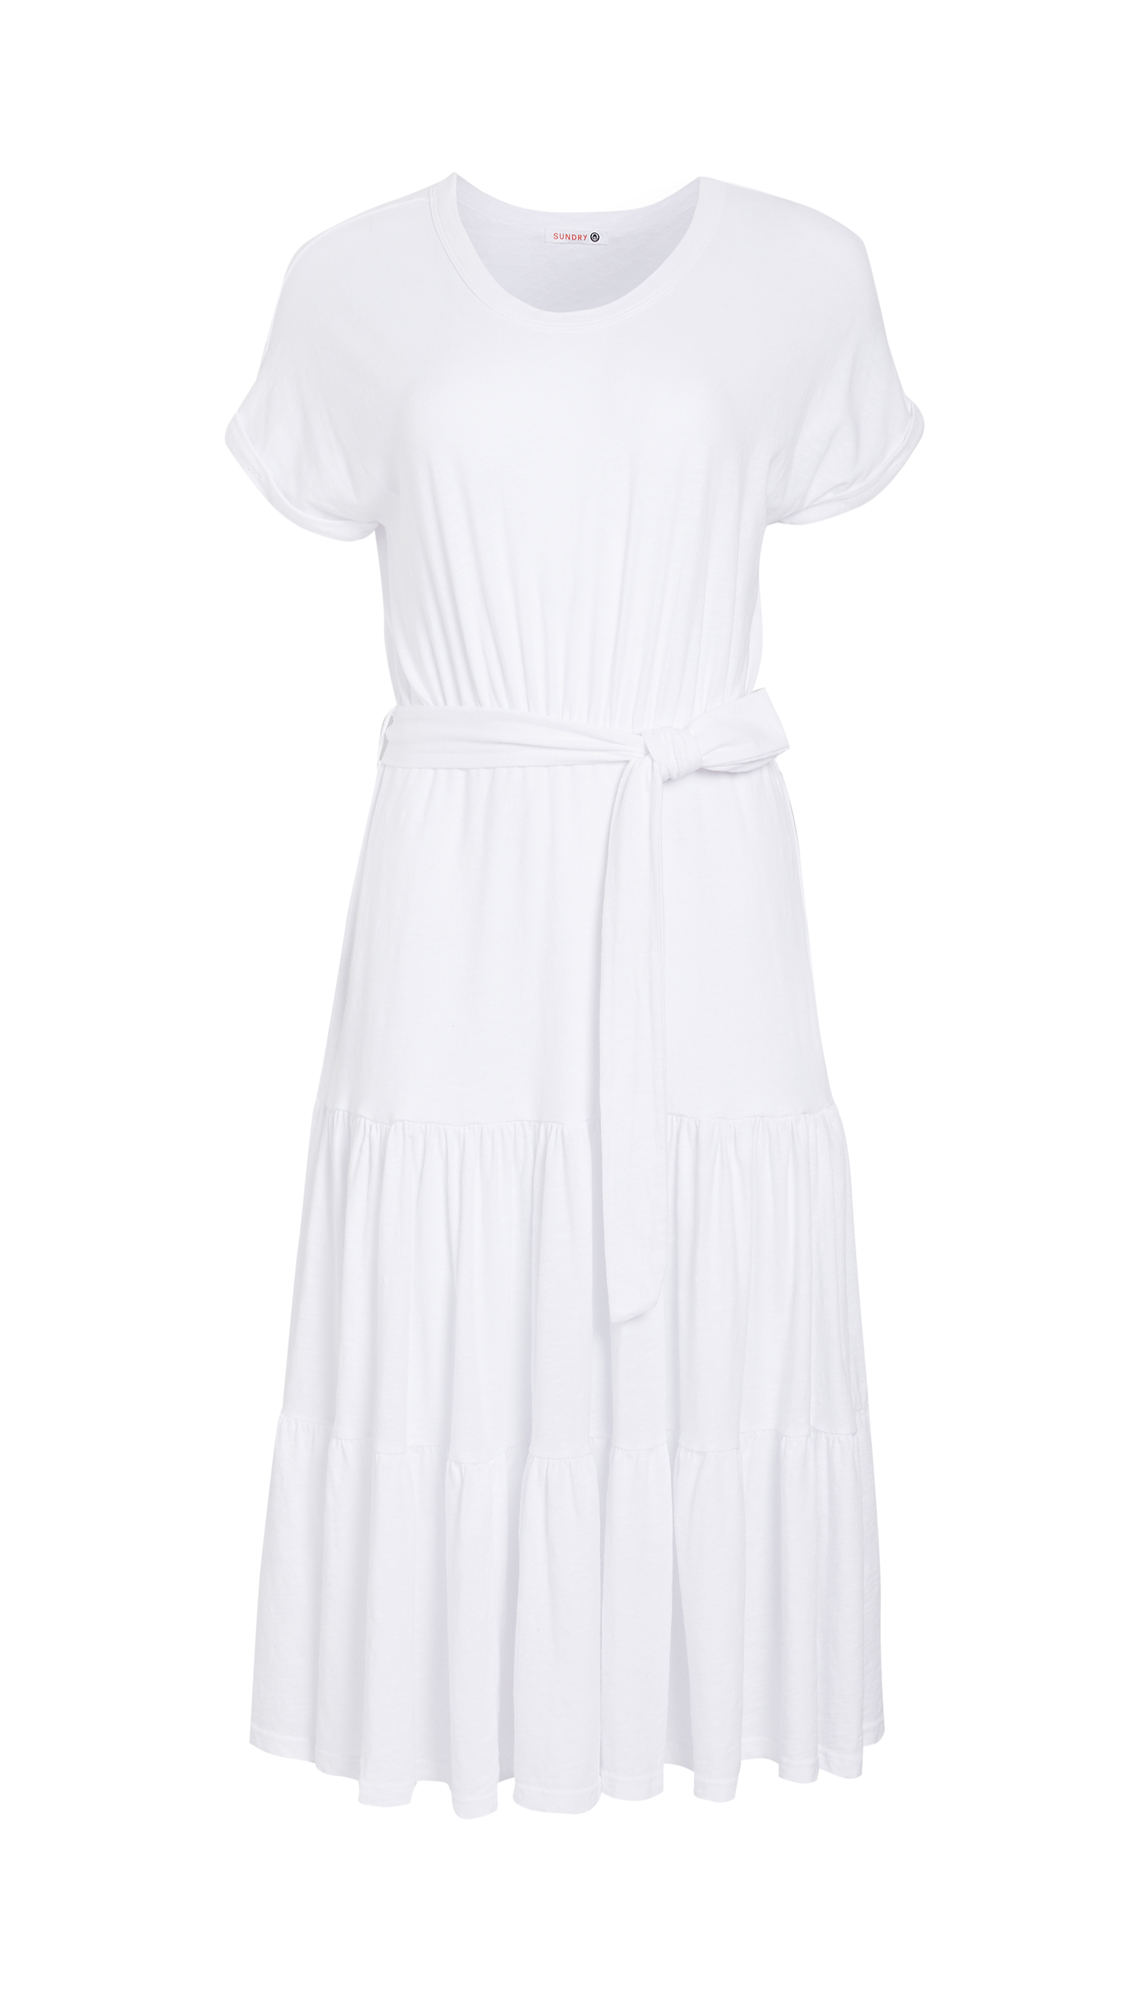 SUNDRY Roll Cuff Dress with Tied Waist